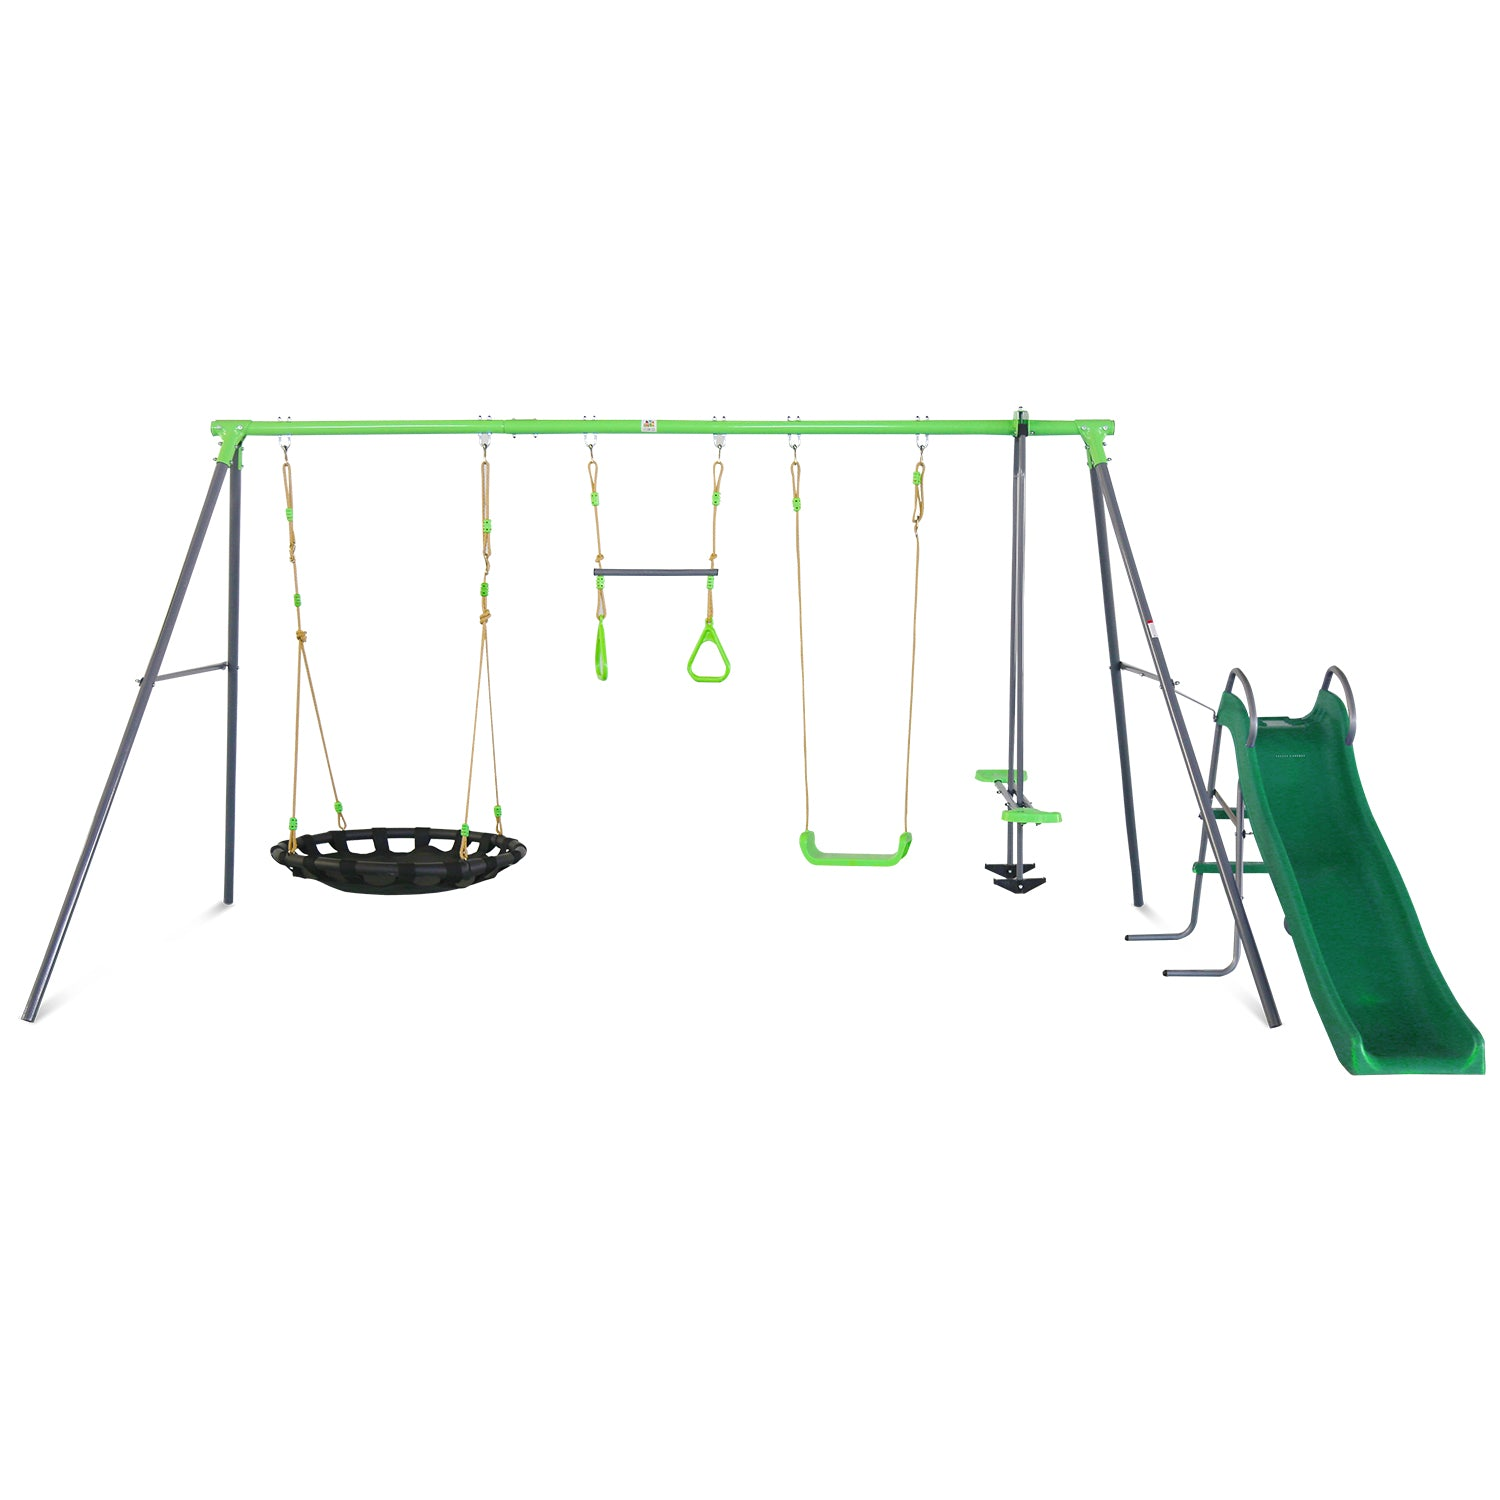 Lifespan Kids Lynx 4 Station Swing Set with Slippery Slide